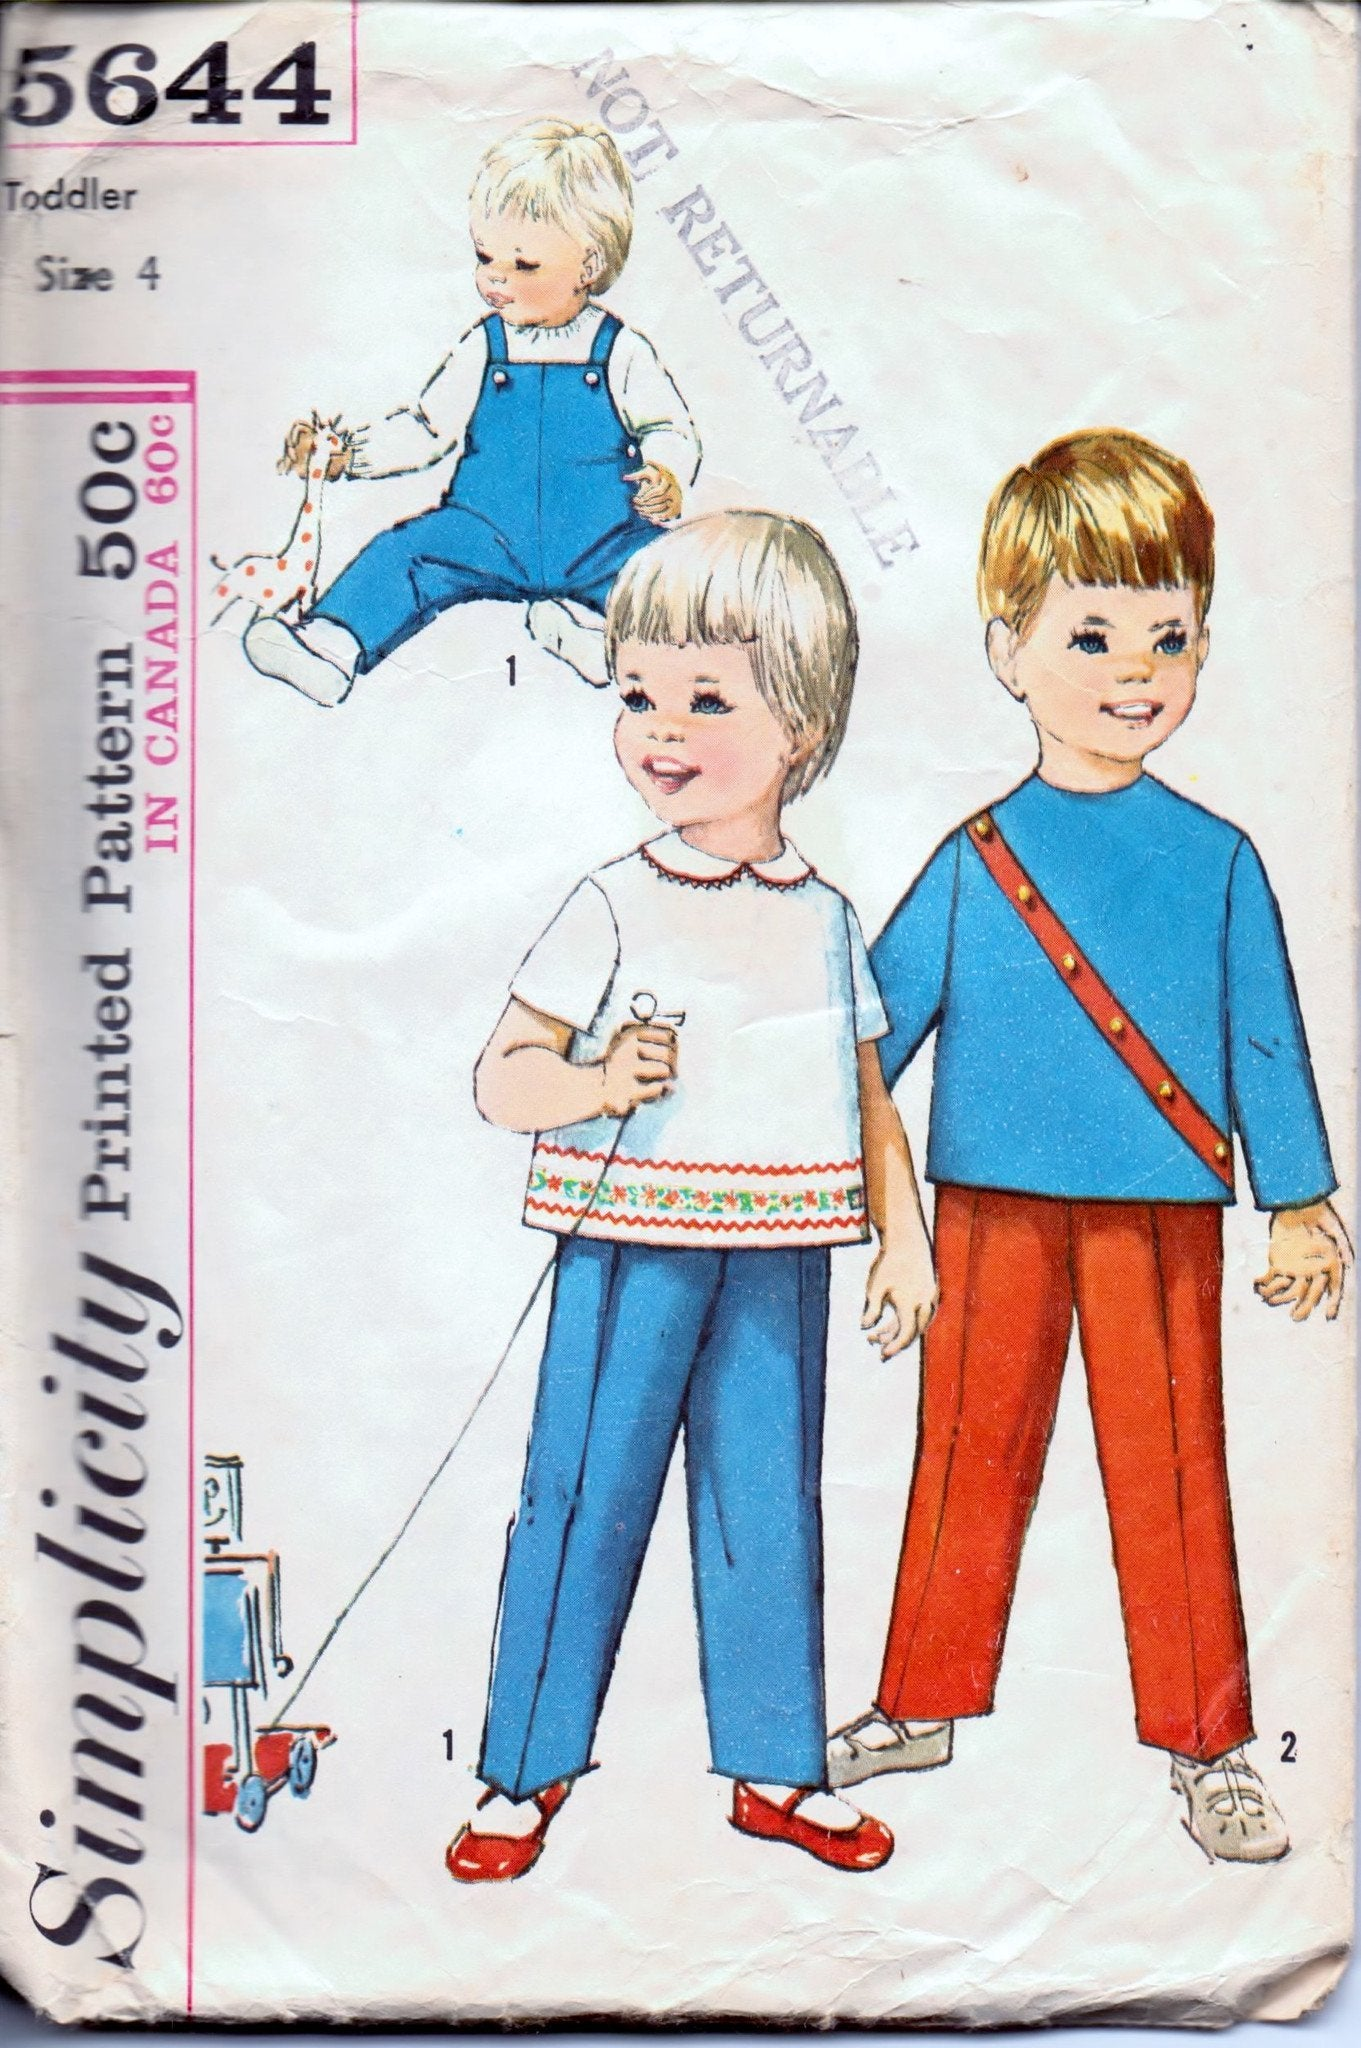 Simplicity 5644 Toddlers' Overalls and Top Vintage 1960's Sewing Pattern - VintageStitching - Vintage Sewing Patterns